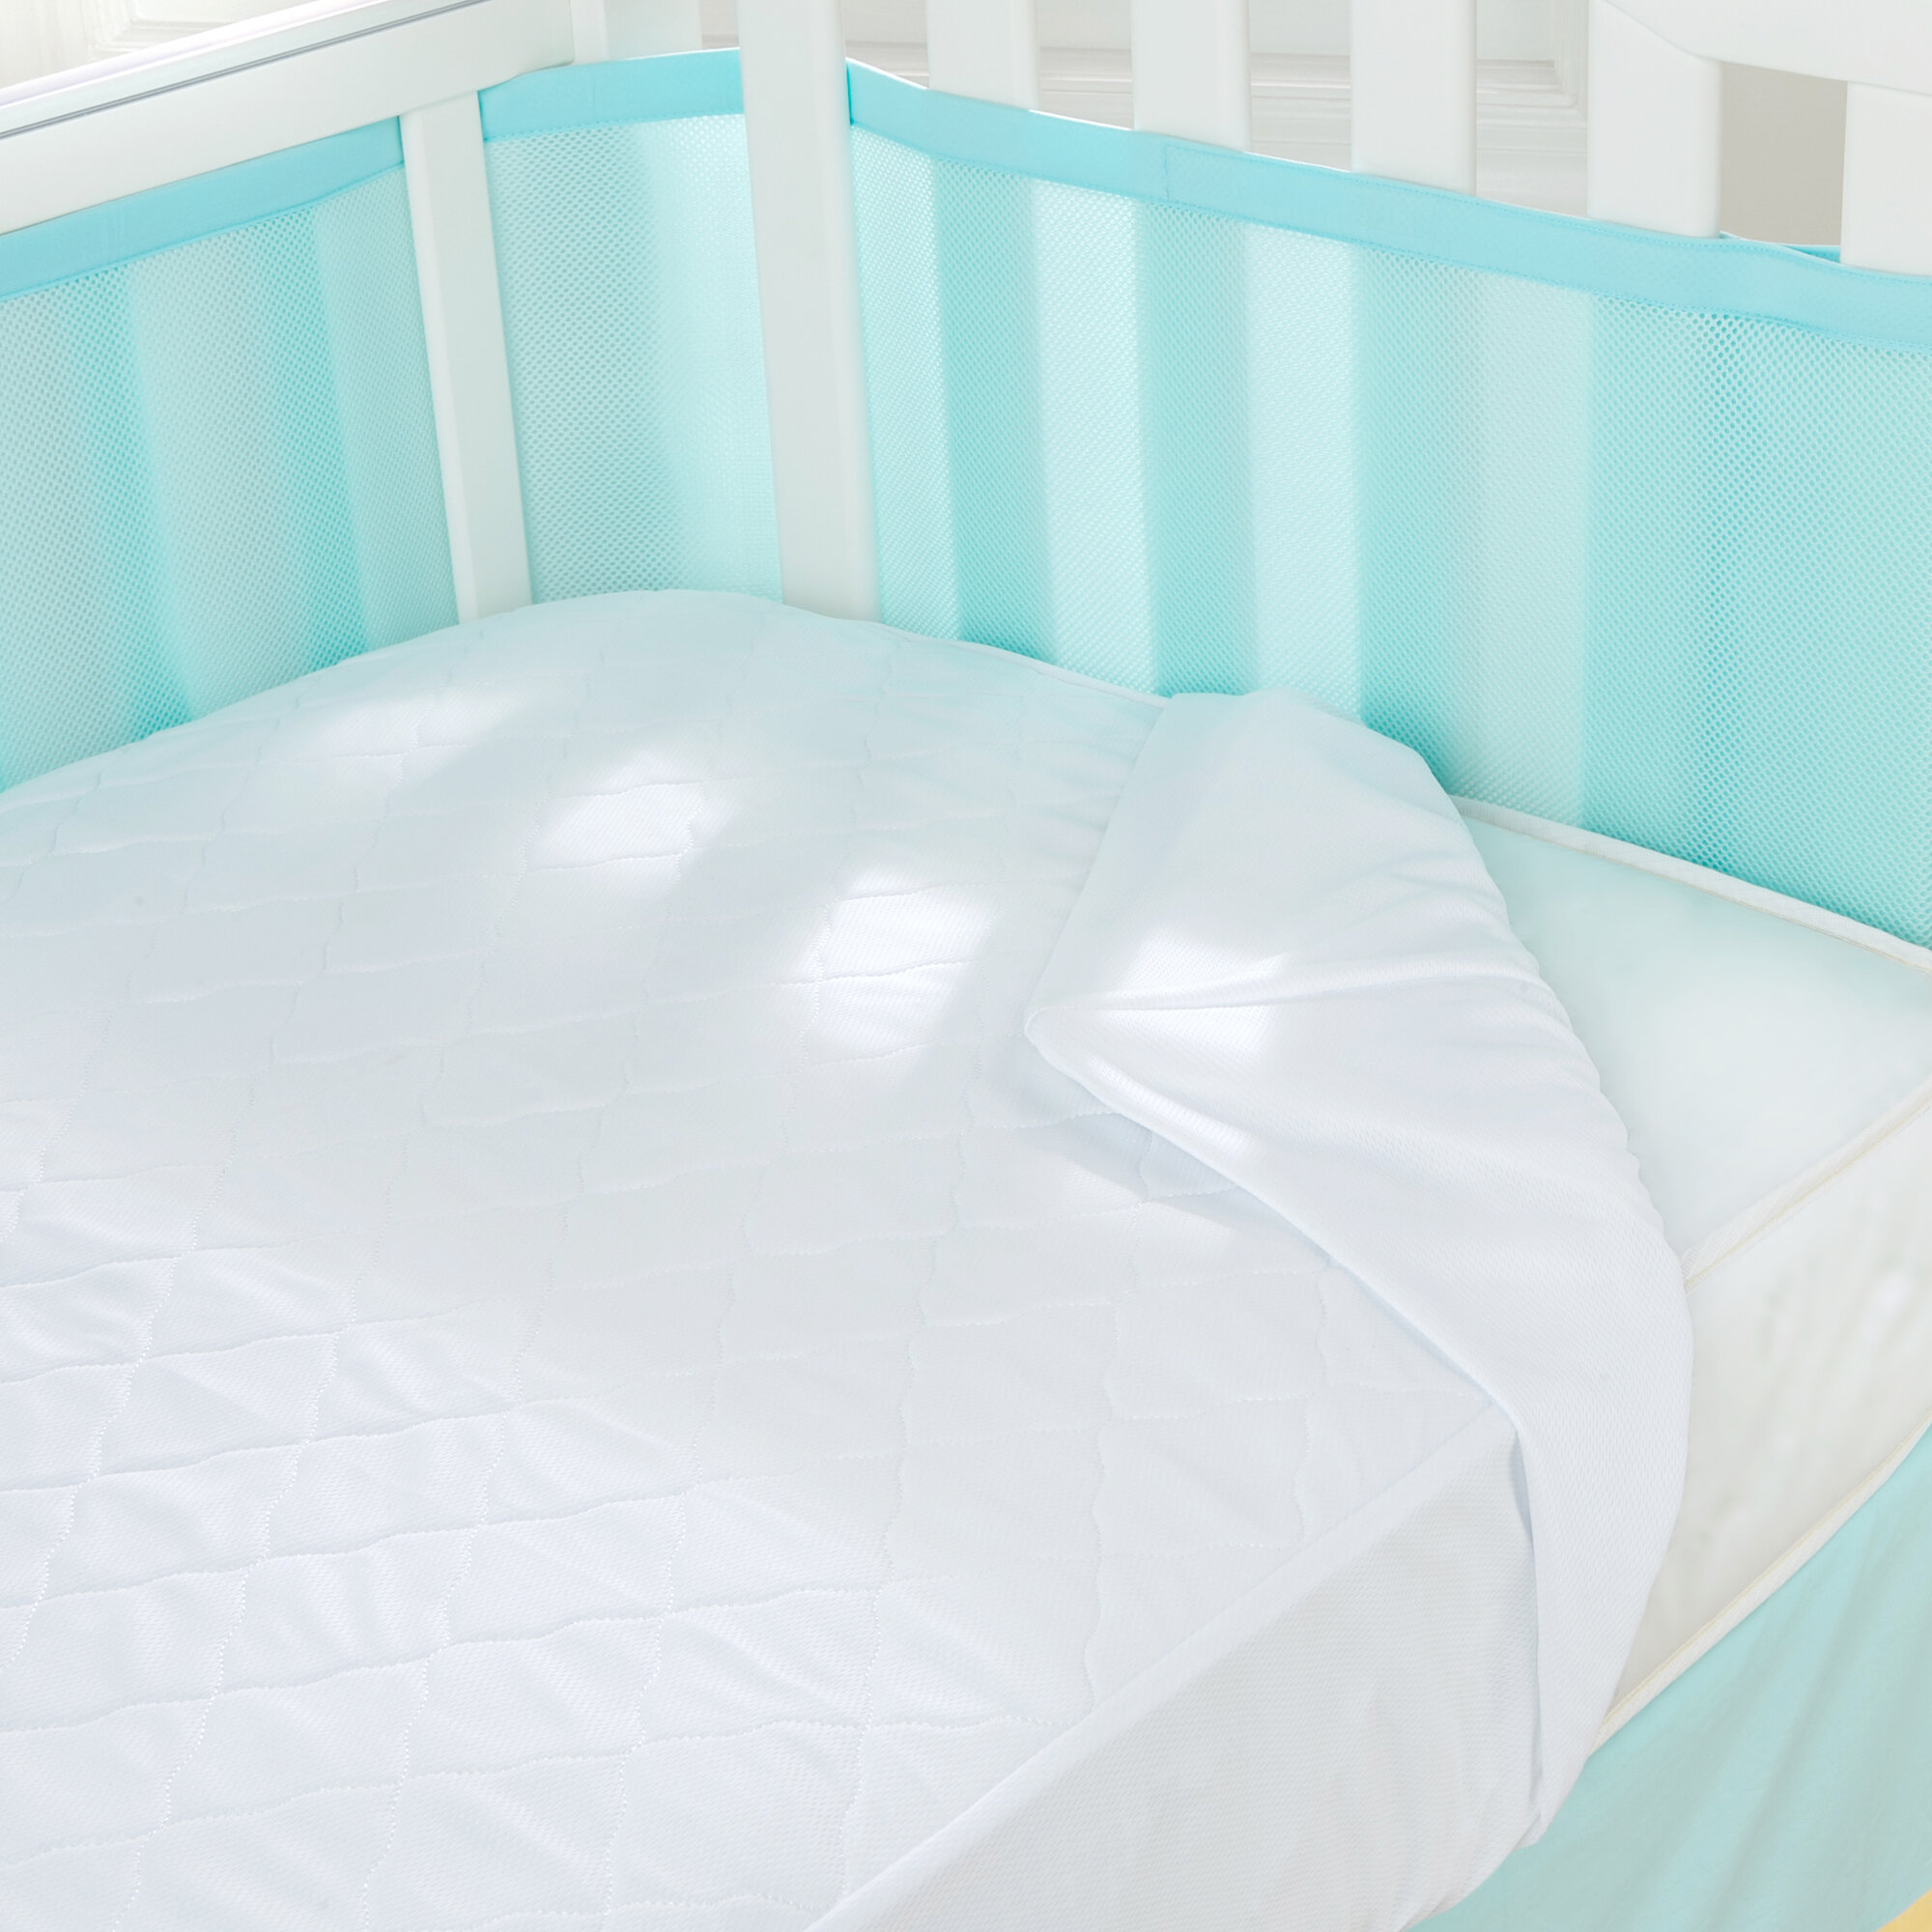 dimensions baby standard cribs image crib measurements white of mattress